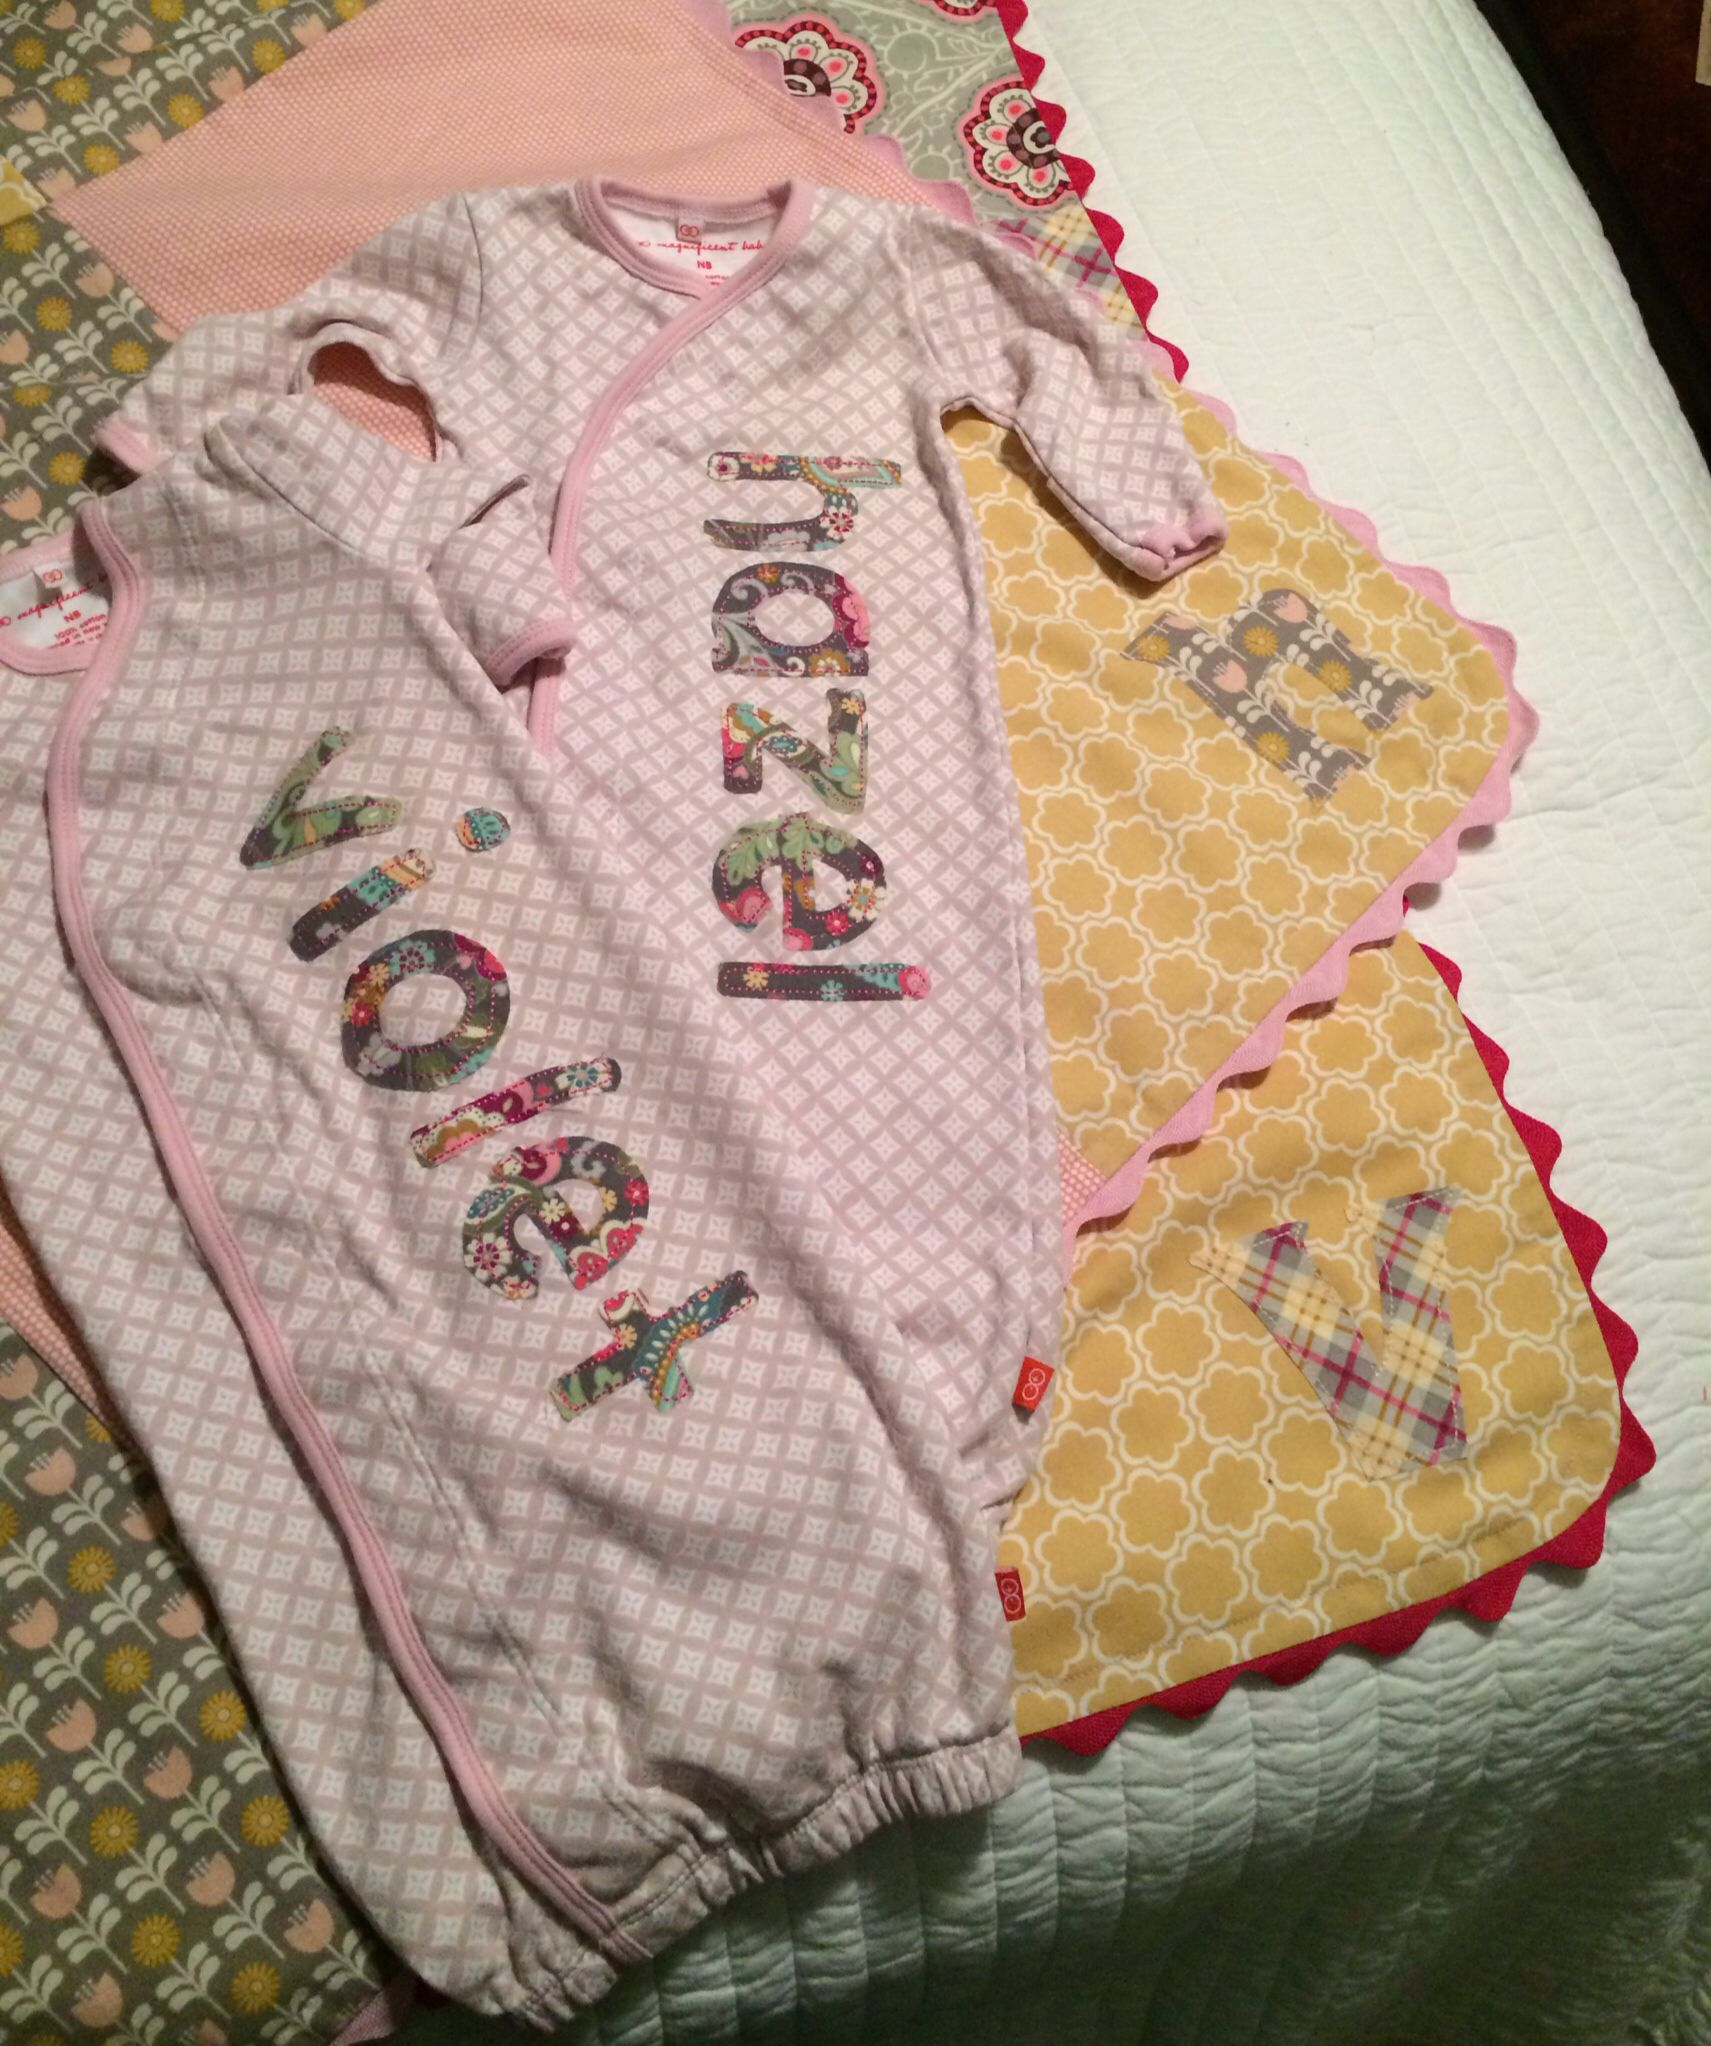 Twinsies. Matching baby blankets and gowns with names.